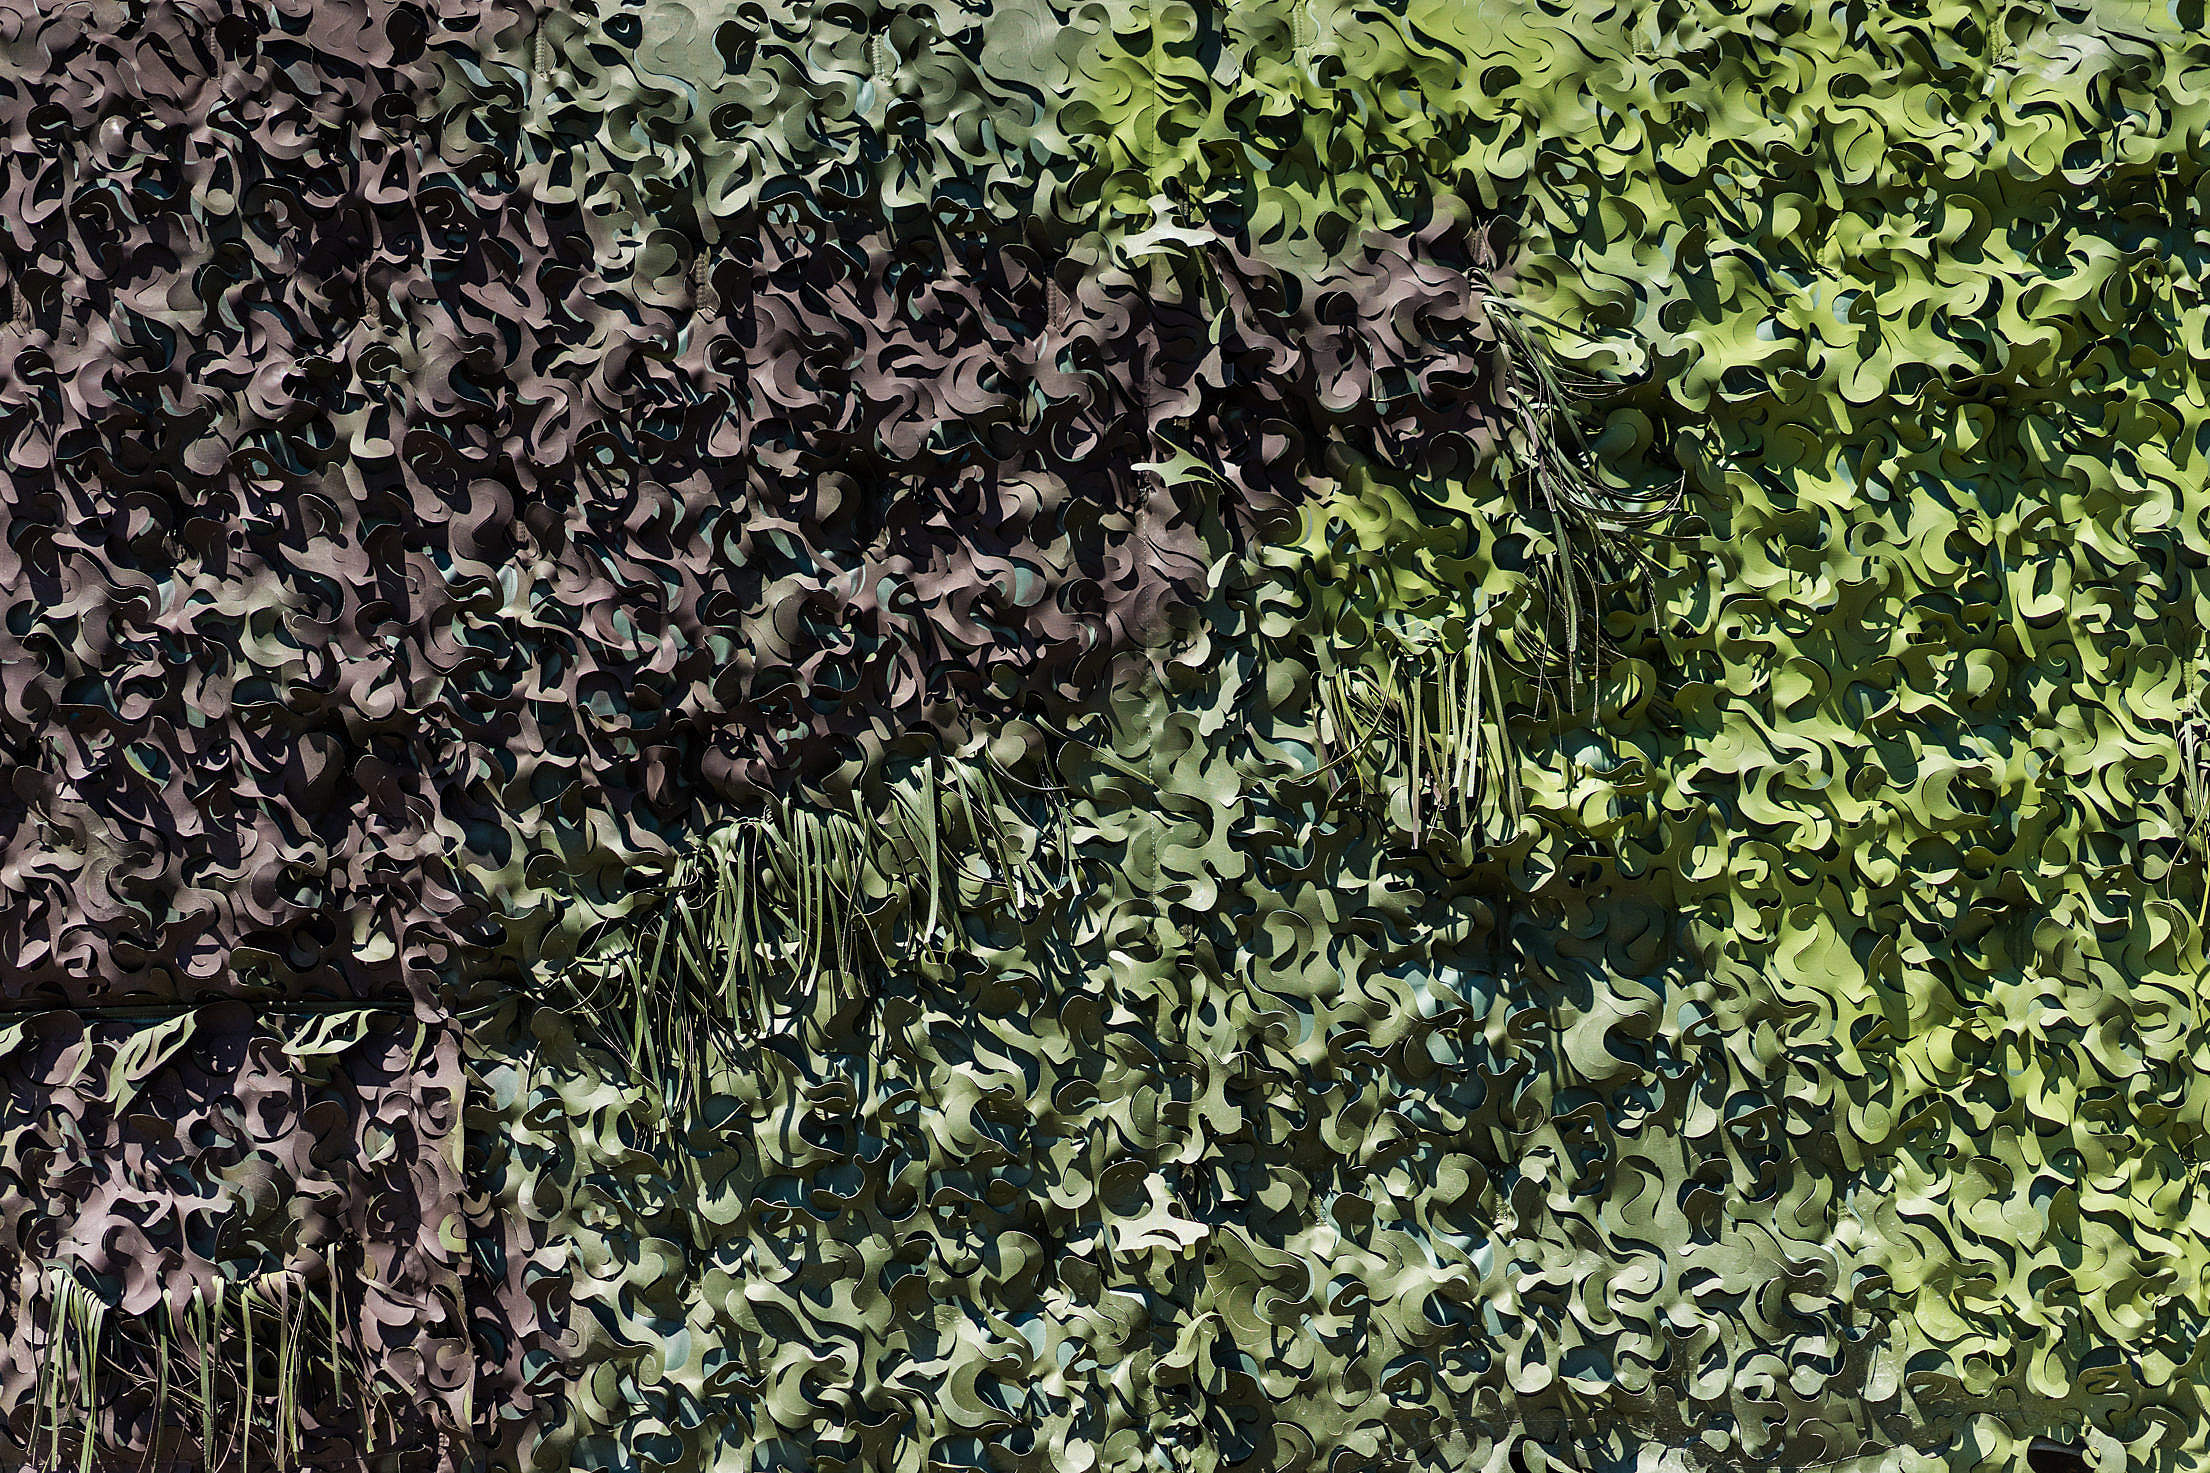 Green Real Army Camouflage Masking Free Stock Photo